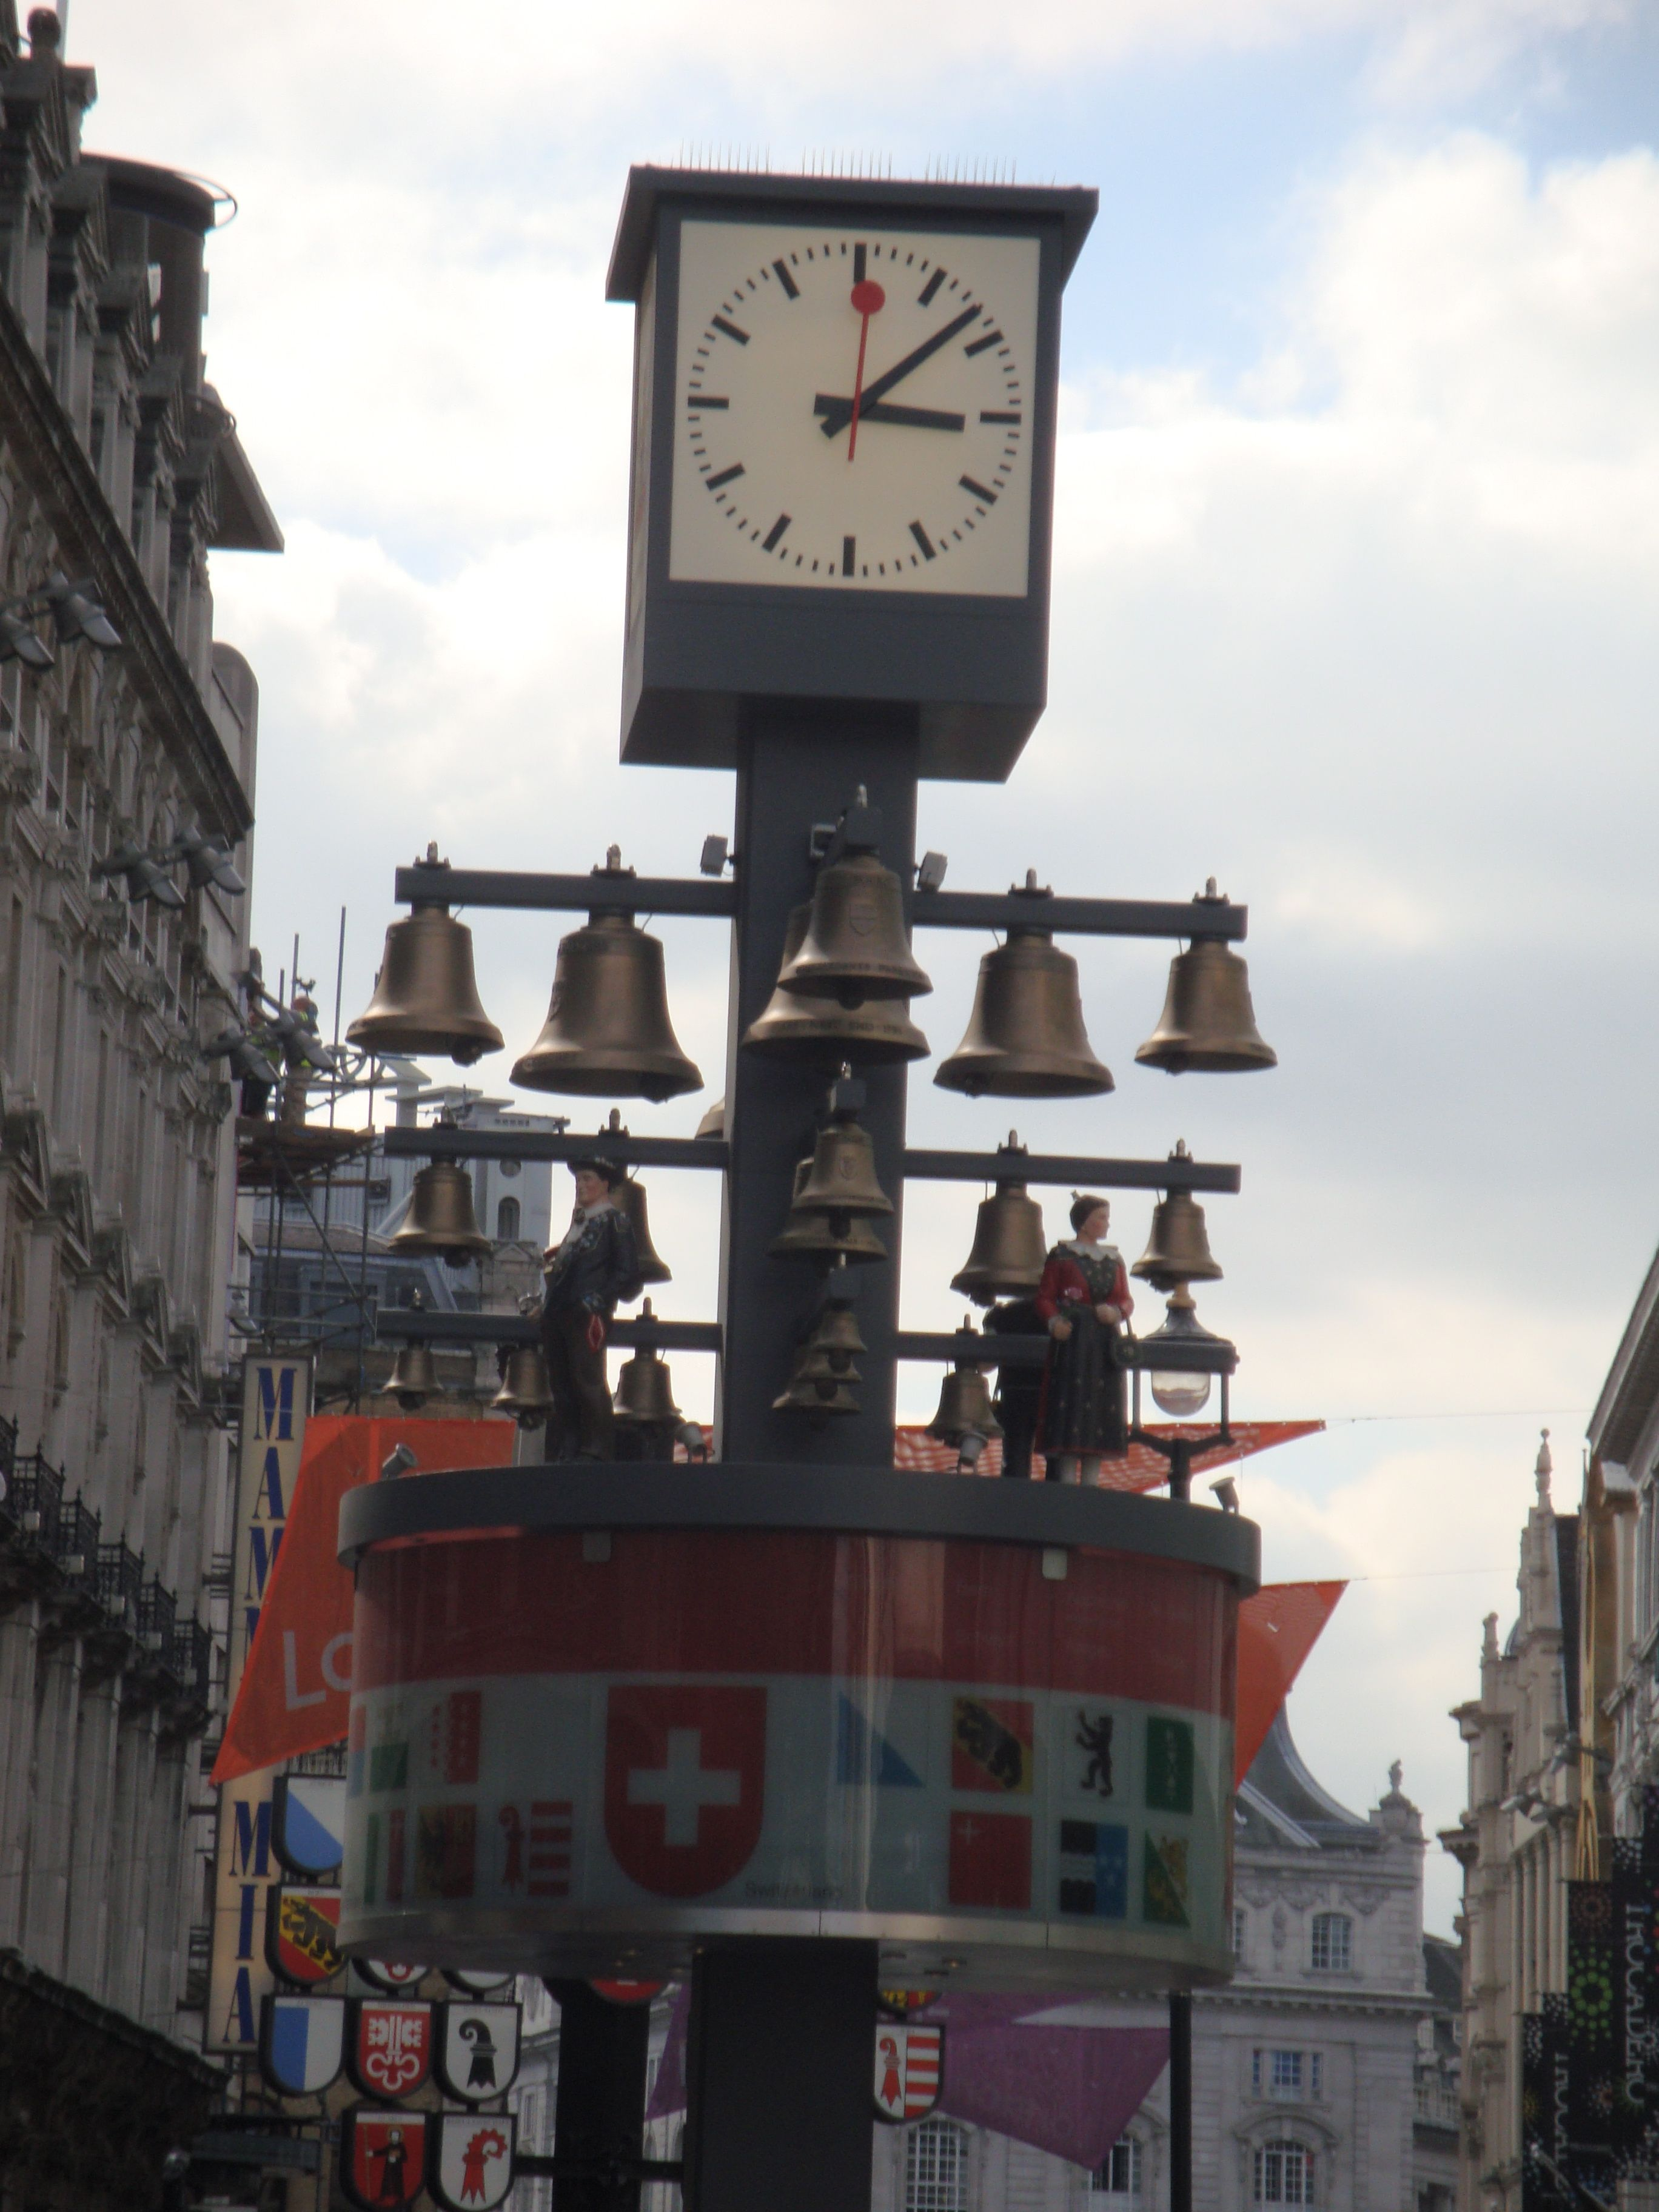 Swiss Chime Clock Leicester Square London England Clocks Recording Time Big